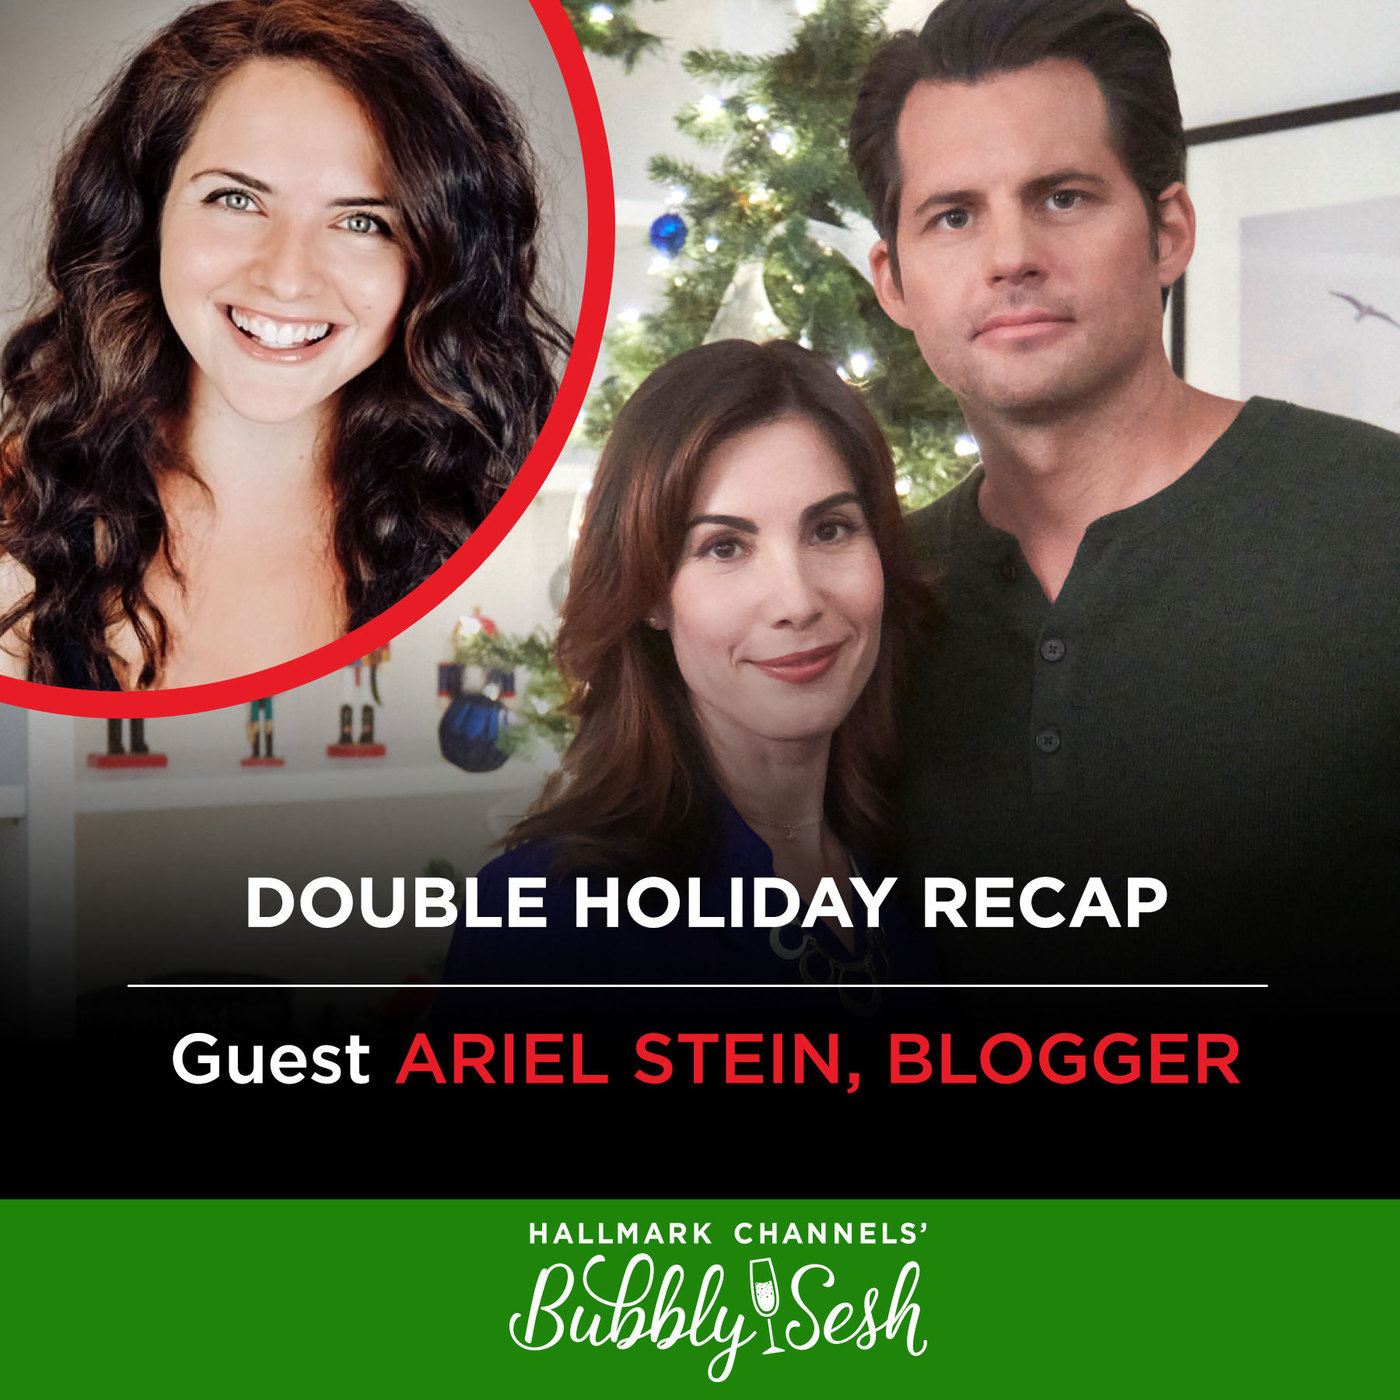 Double Holiday Recap with Ariel Stein